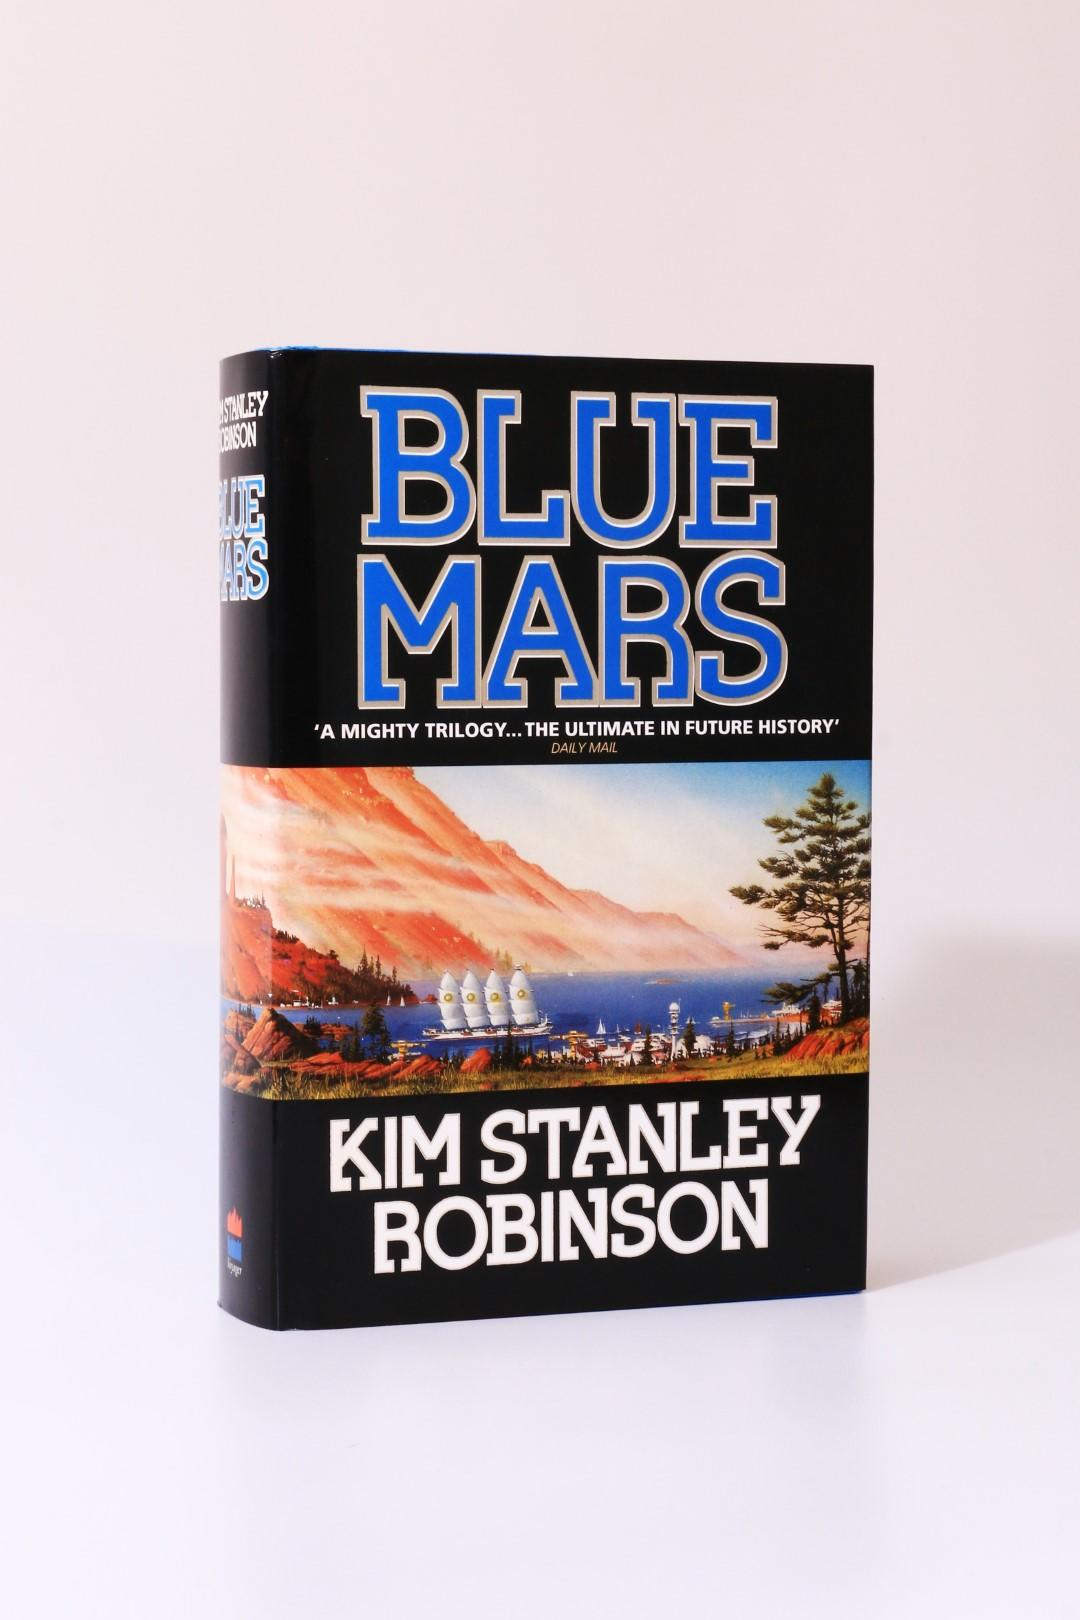 Kim Stanley Robinson - Blue Mars - Harper Collins, 1996, Signed First Edition.